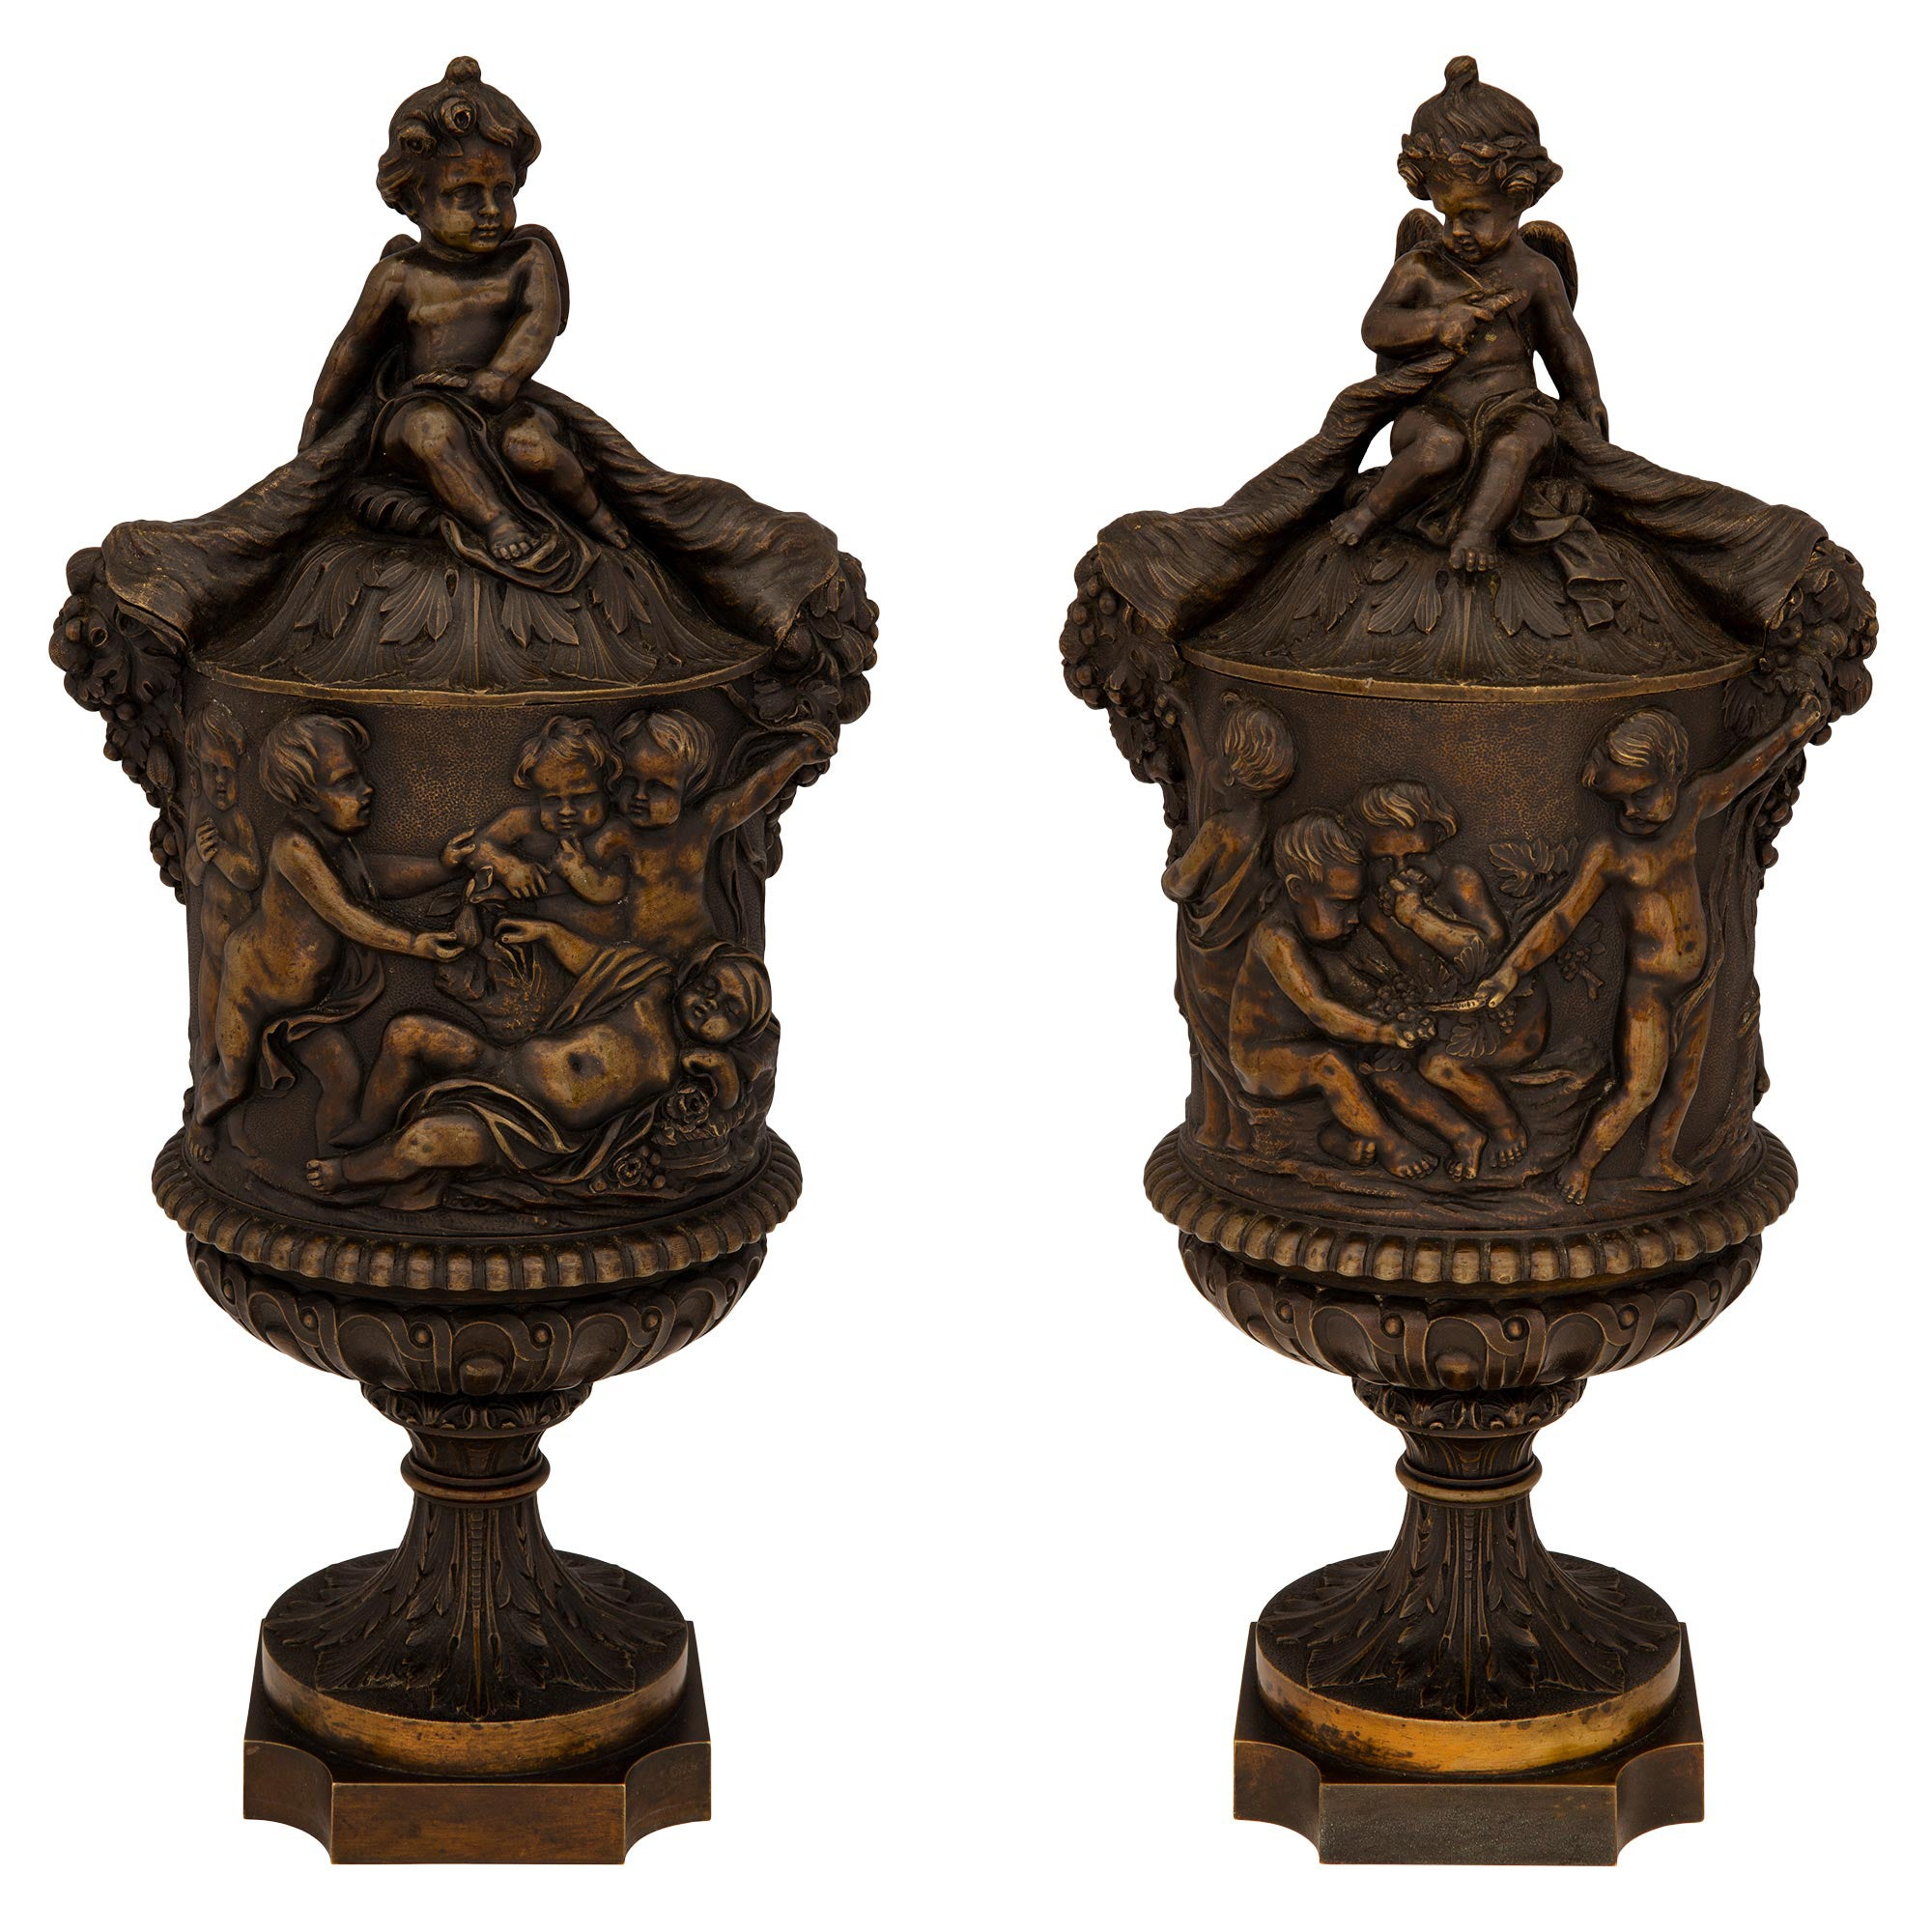 Pair of French 19th Century Renaissance Style Patinated Bronze Lidded Urns